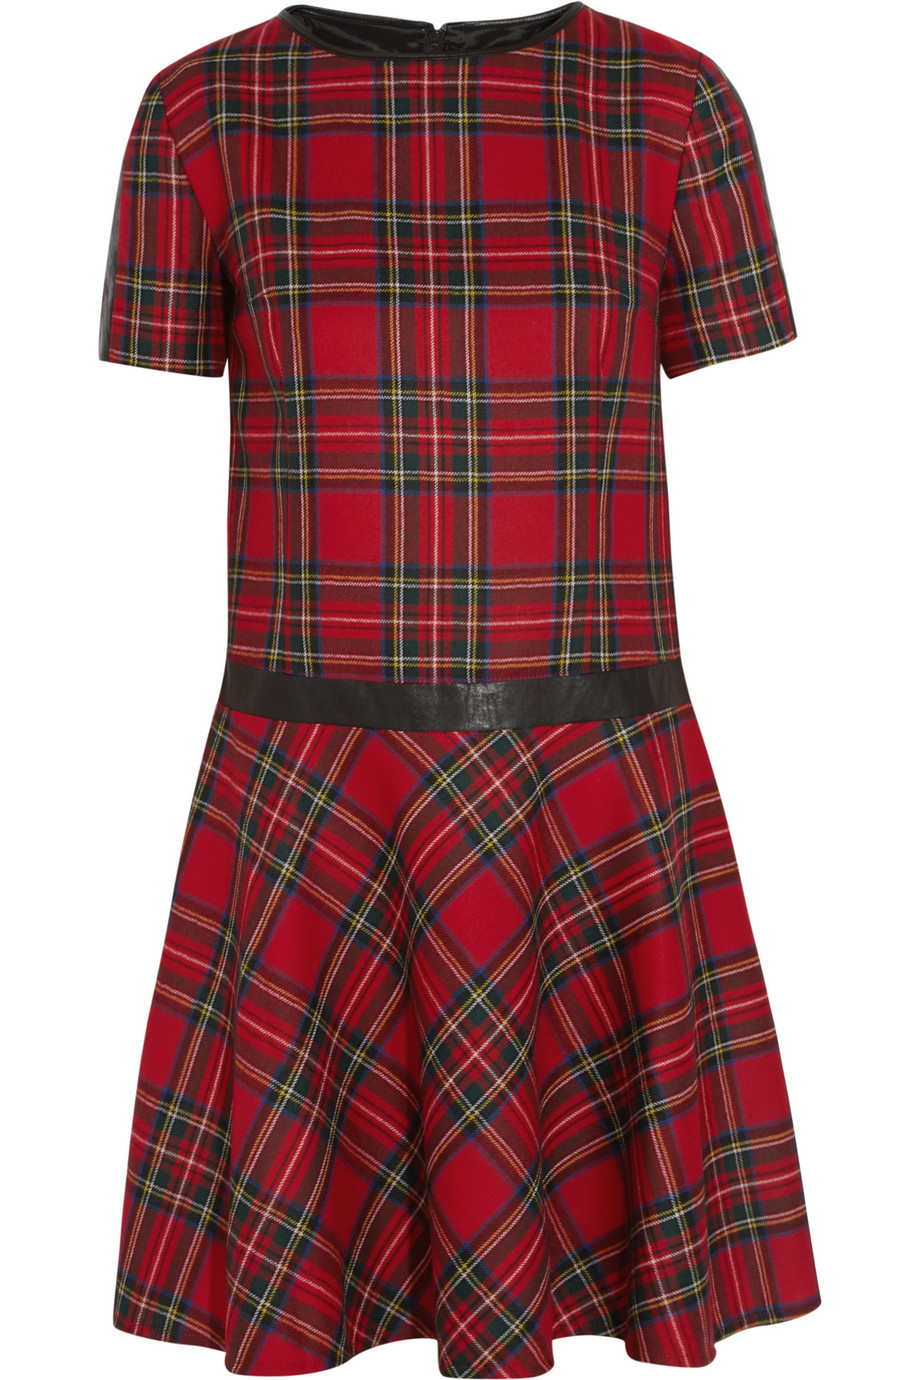 Play Video View full size image Karl Lagerfeld Penny faux leather-trimmed tartan wool dress